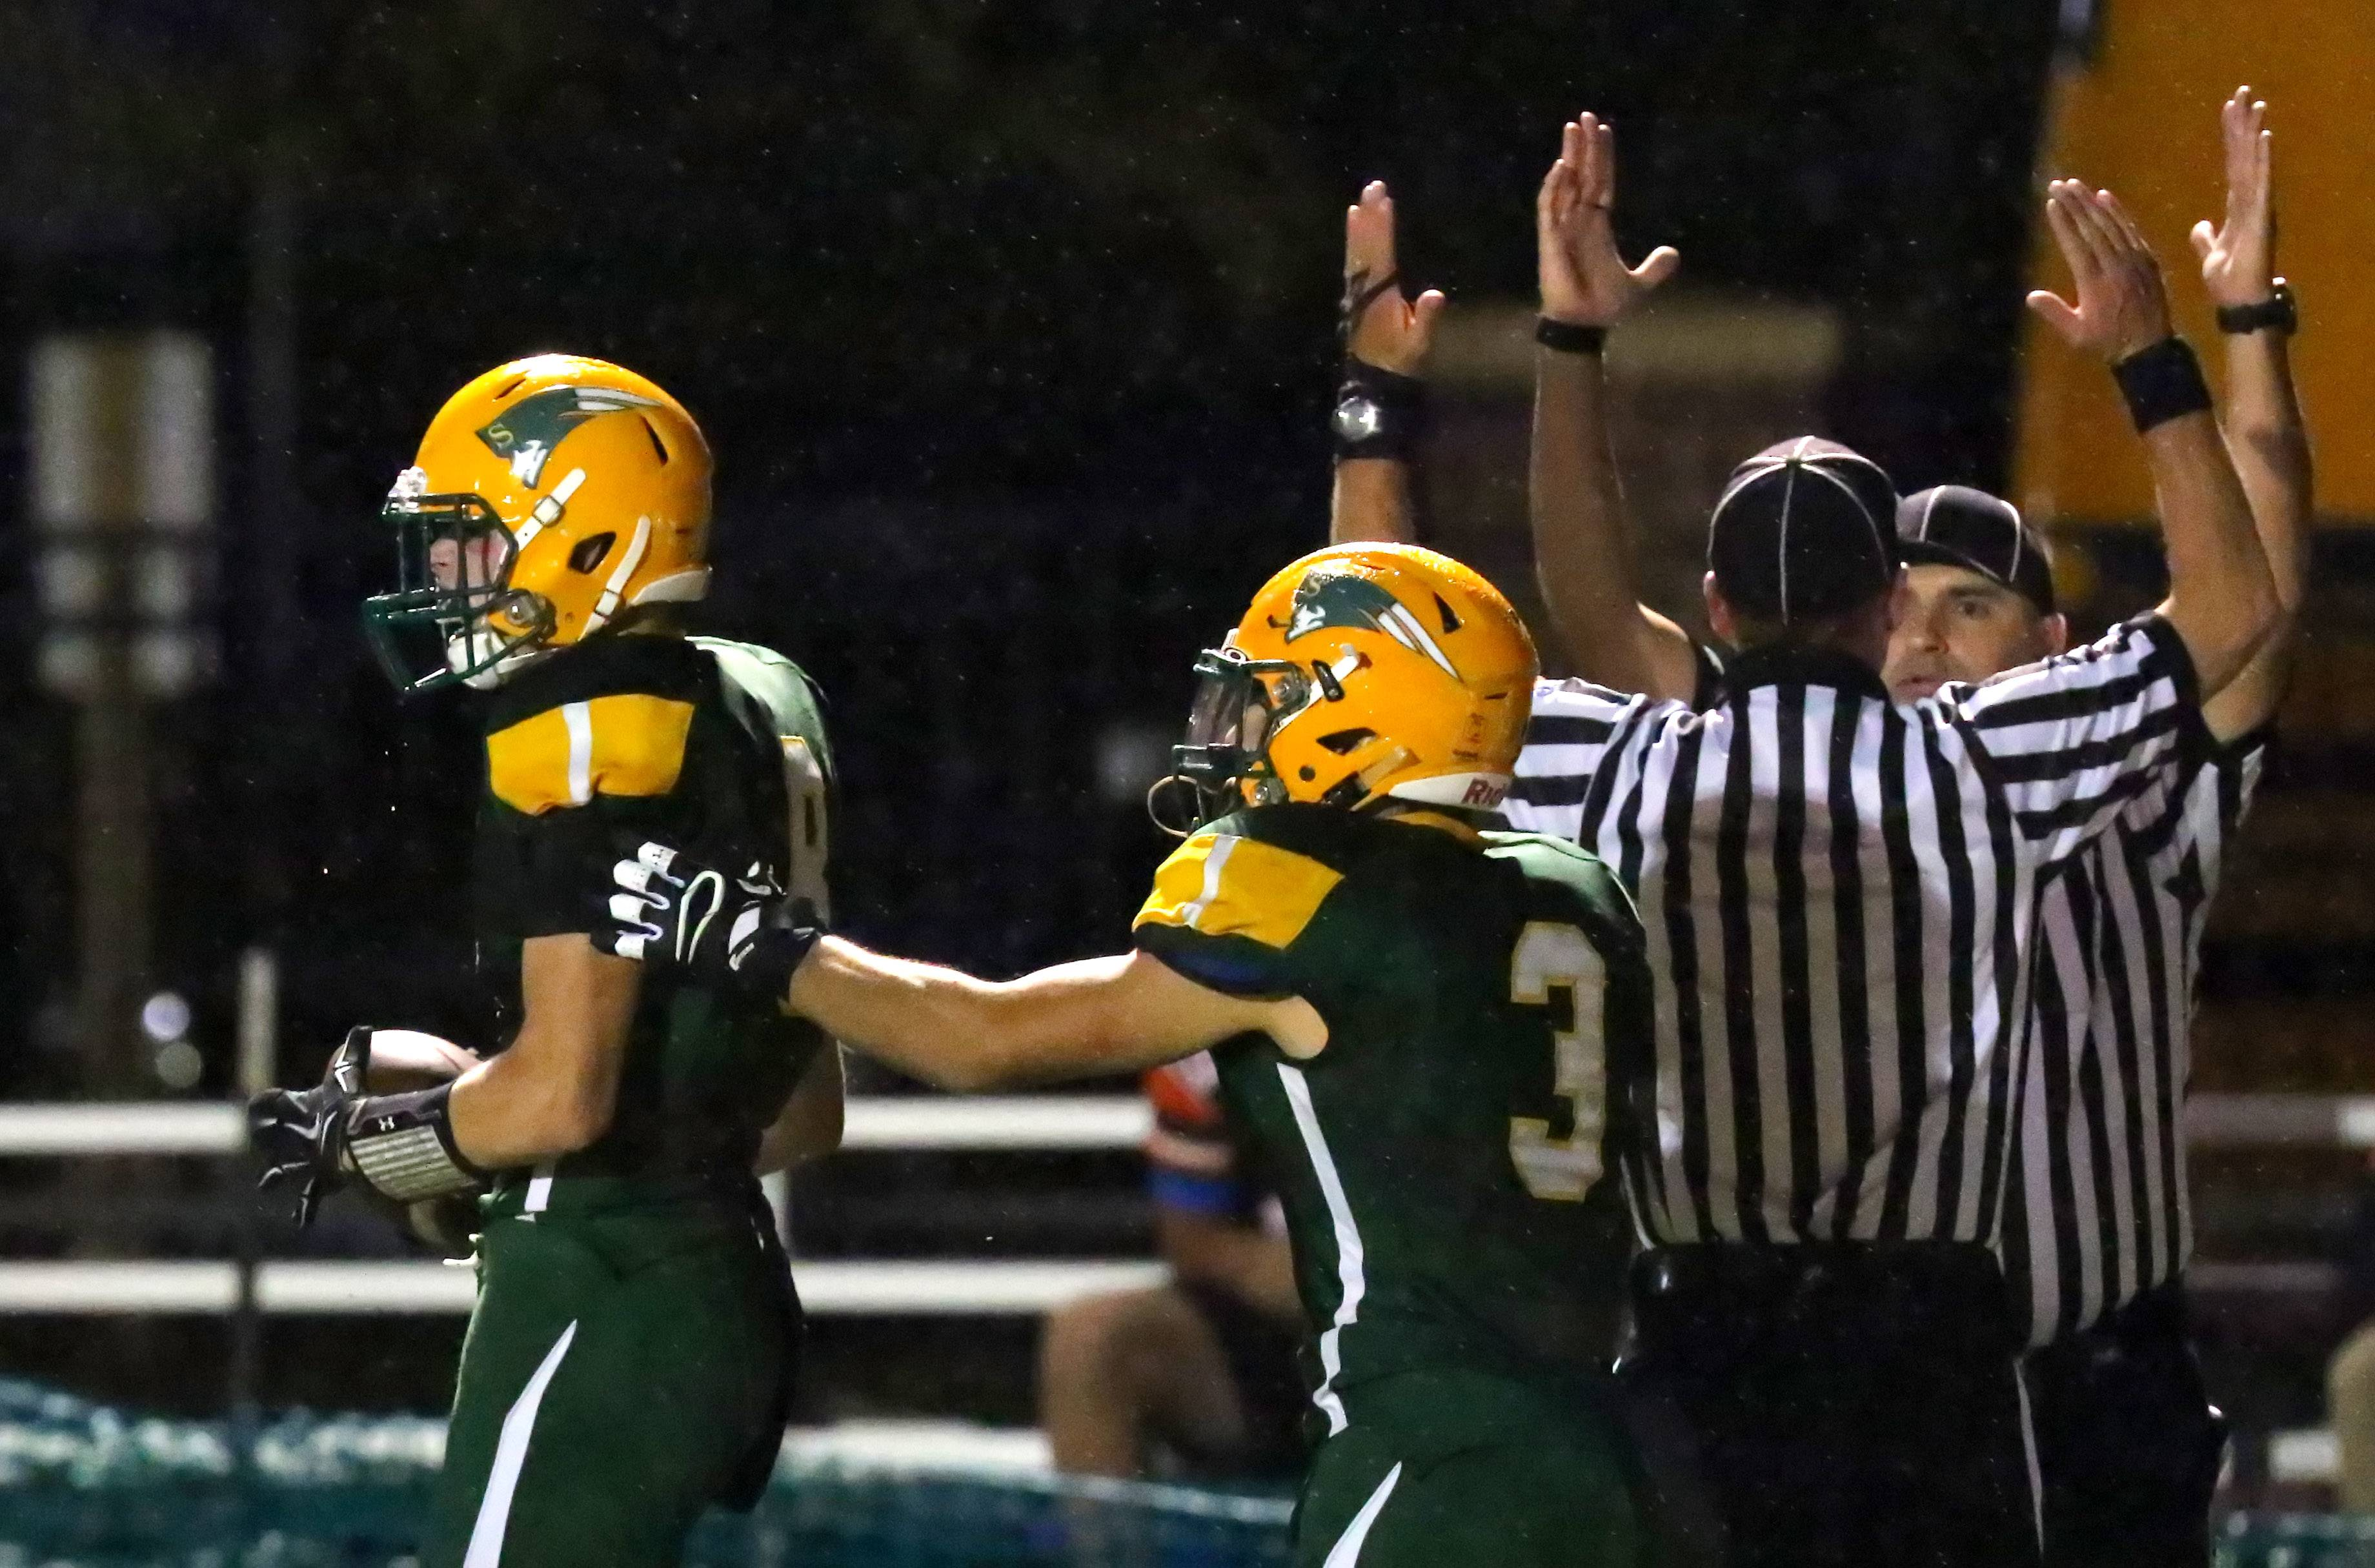 Stevenson's Michael Marchese, left, celebrates with Anthony Sibo after a touchdown catch against Libertyville on Friday night at Stevenson.